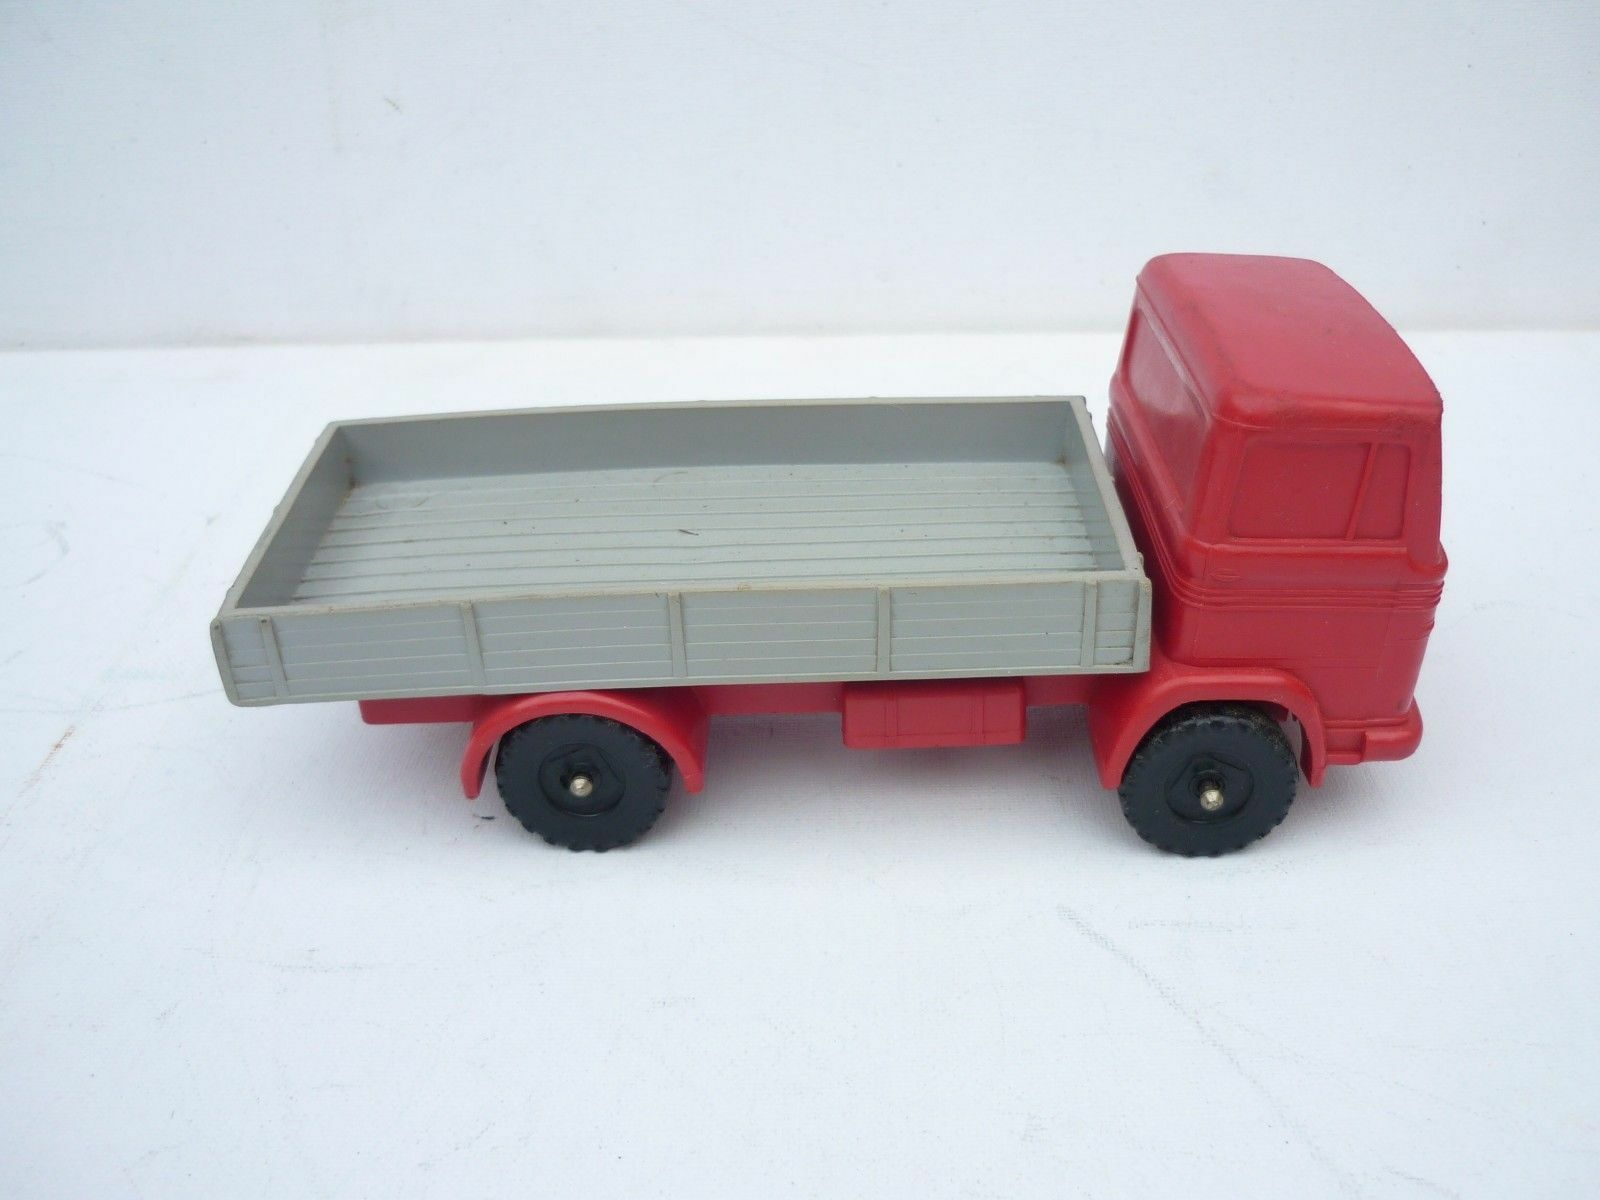 PN TOYS GERMANY MERCEDES BENZ PLASTIC RUBBER RUBBER RUBBER KIPPER ABOUT 1/24 DIECAST RARE ceafbe